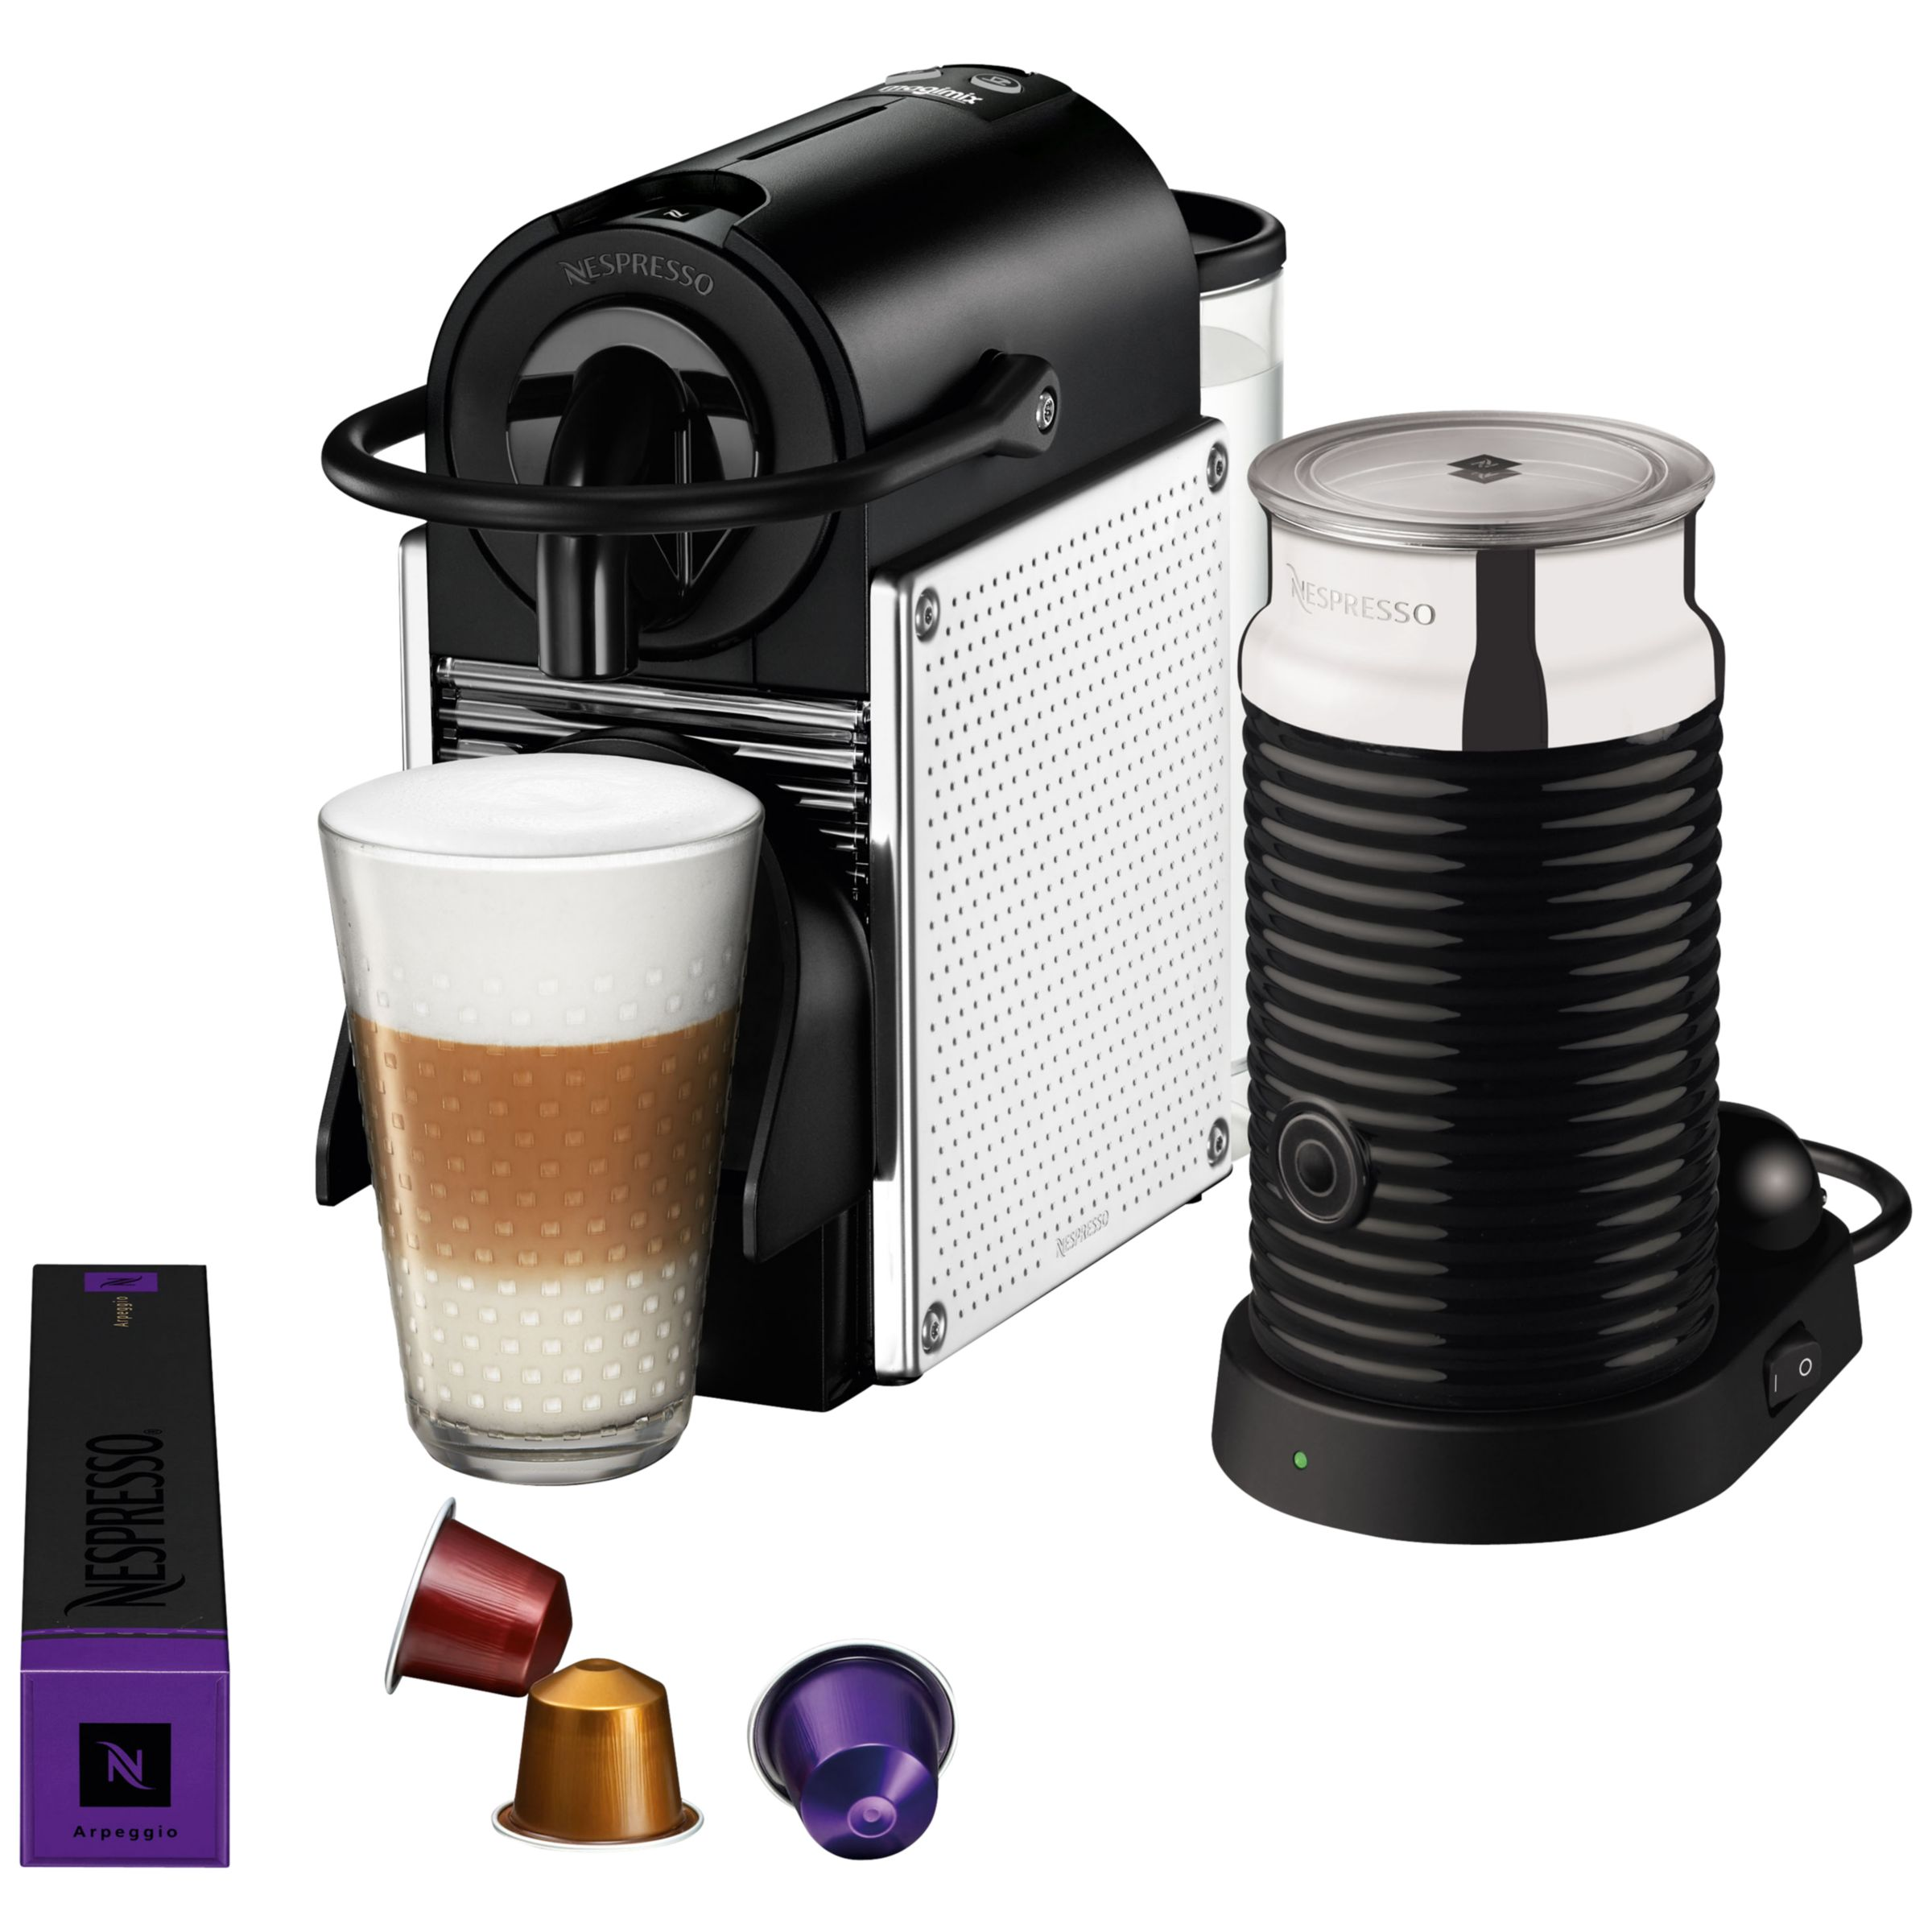 Delonghi Coffee Maker Homebase : Buy cheap One cup coffee maker - compare Coffee Makers prices for best UK deals